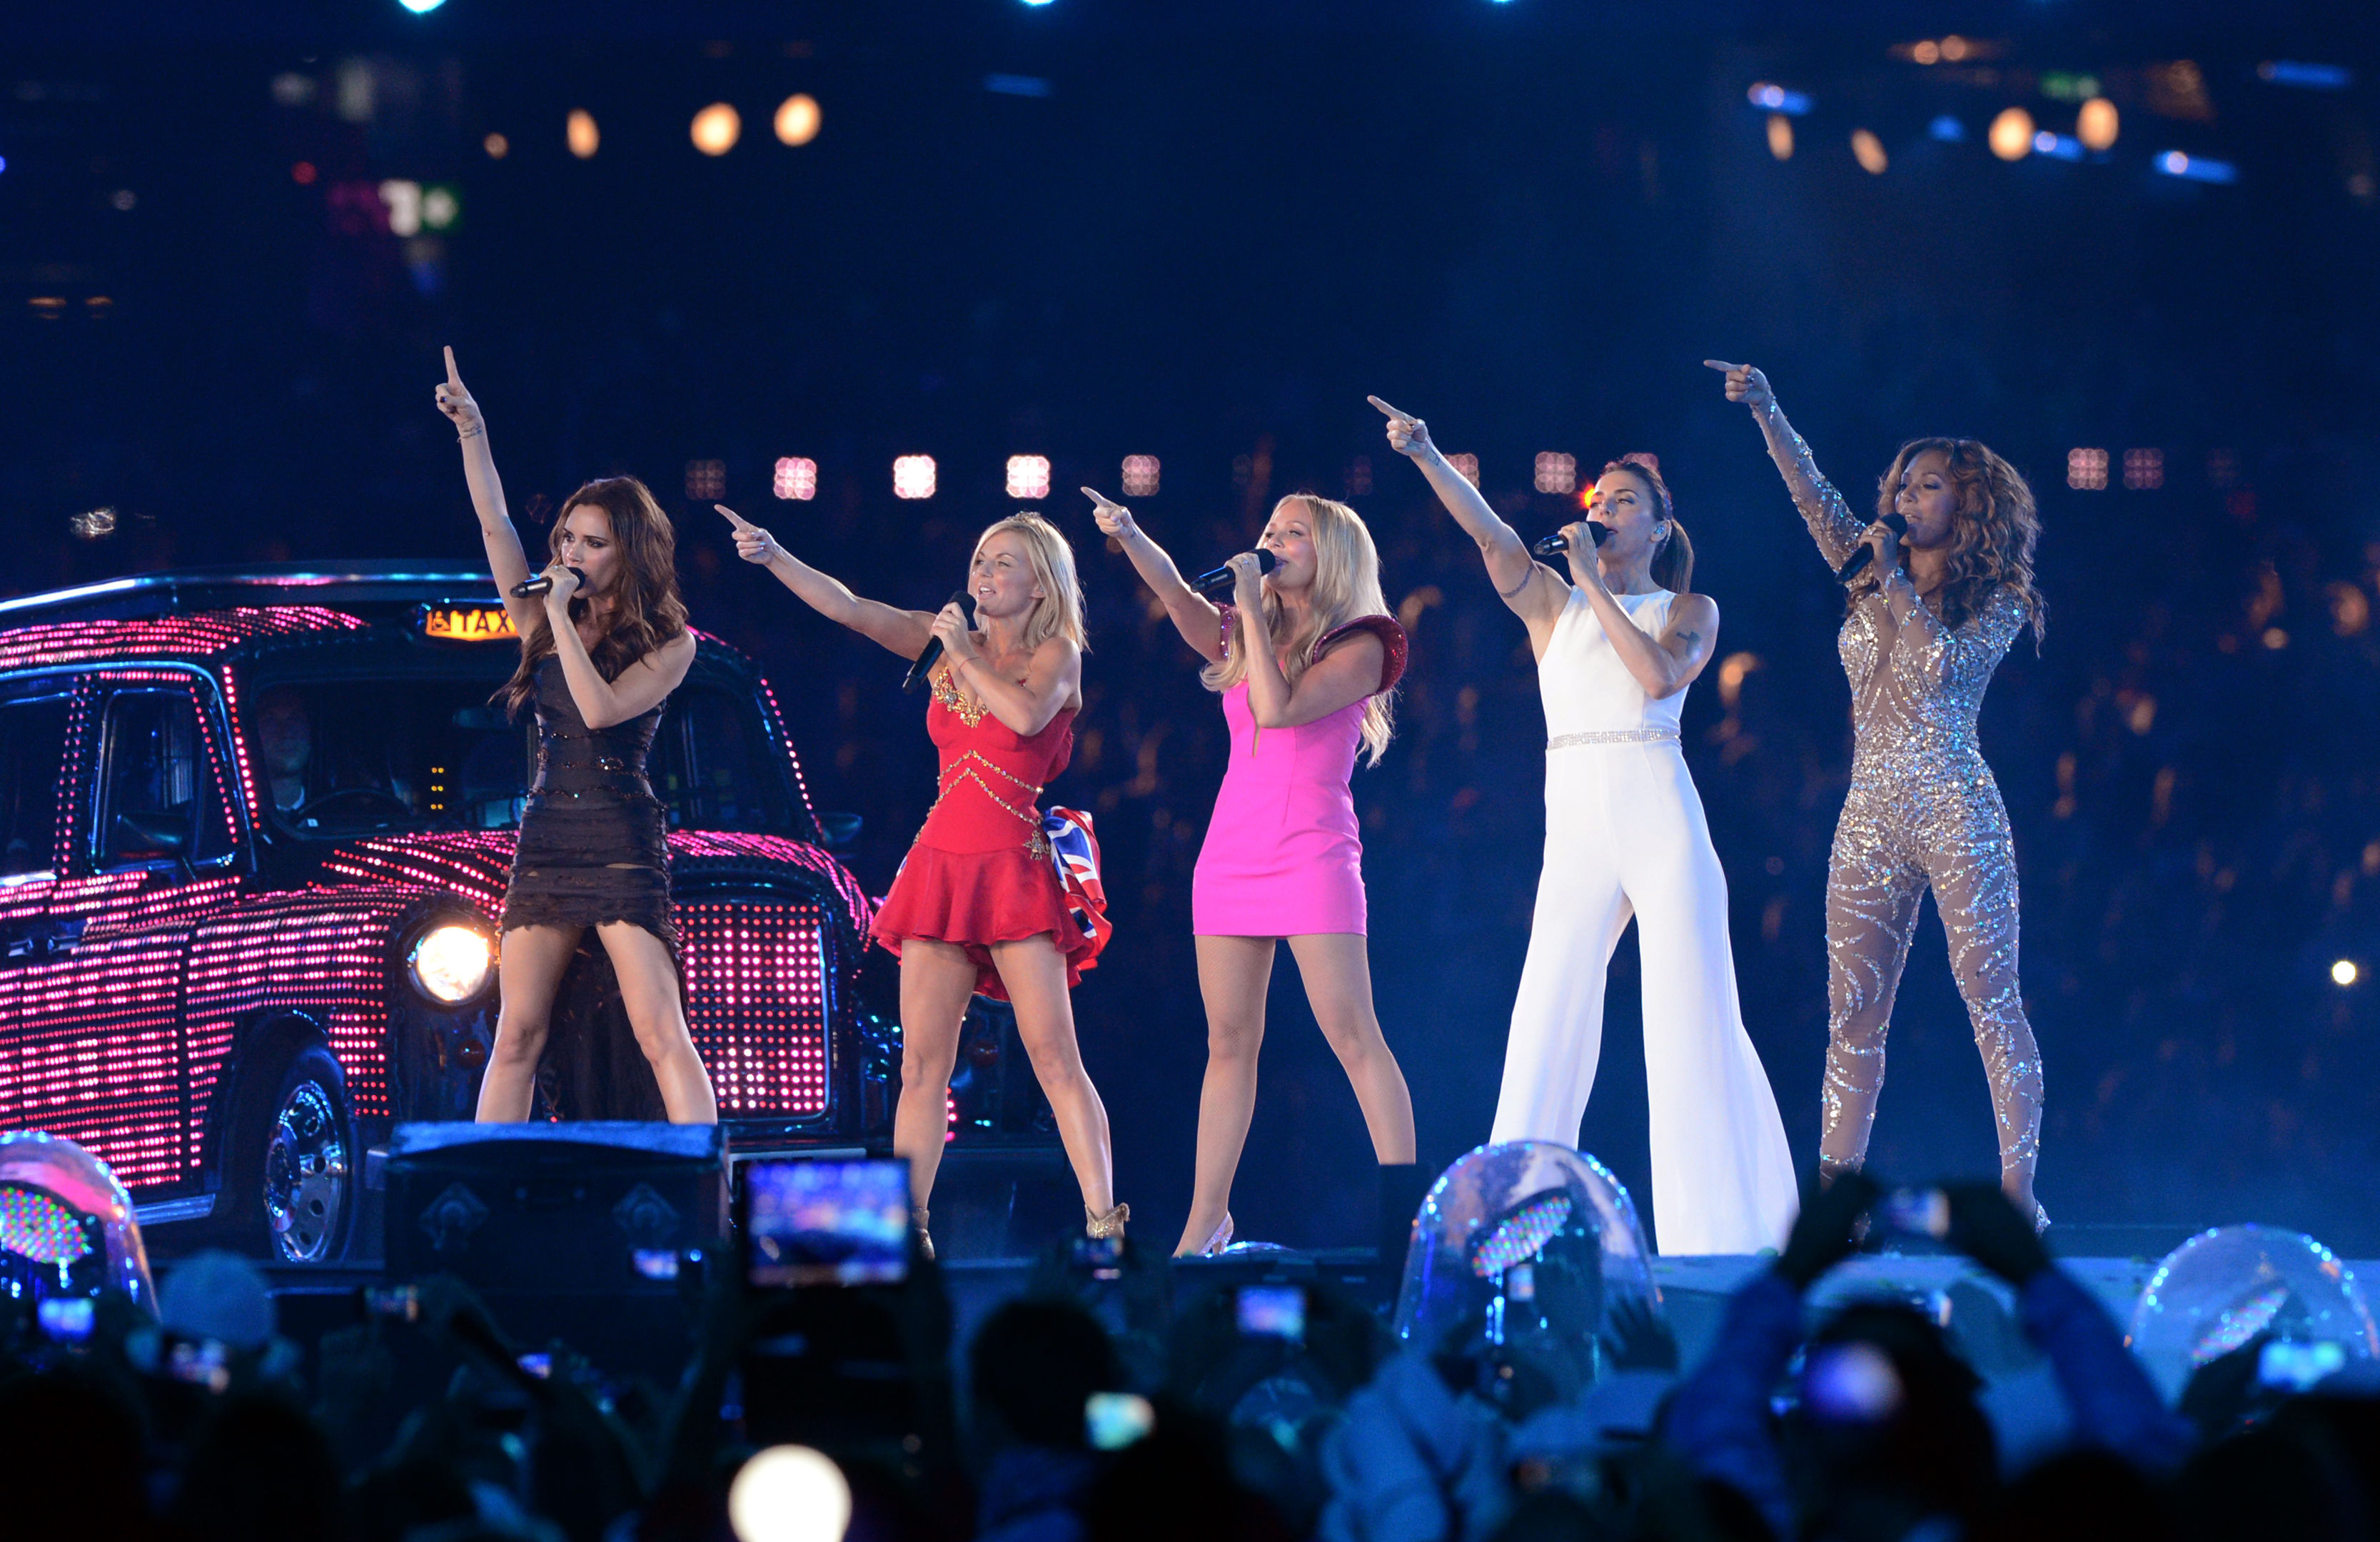 The Spice Girls Victoria Beckham, Geri Halliwell, Emma Bunton, Melanie Chisholm, Melanie Brown perform during the closing ceremony of the London 2012 Olympic games, London   (Photo by Anthony Devlin/PA Images via Getty Images)